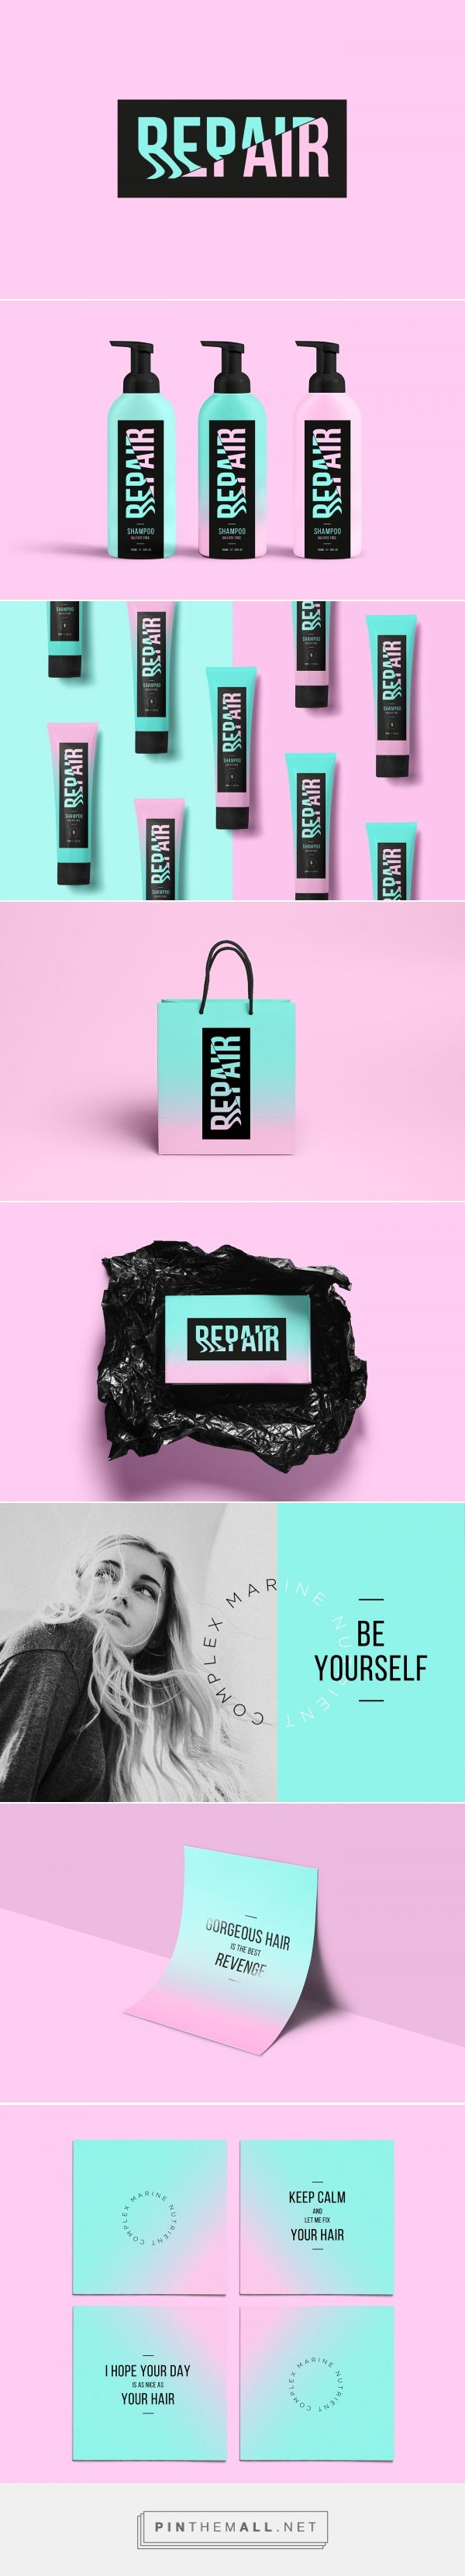 Repair Hair Product Branding and Packaging by Milena Wlodarczyk | Fivestar Branding Agency – Design and Branding Agency & Curated Inspiration Gallery